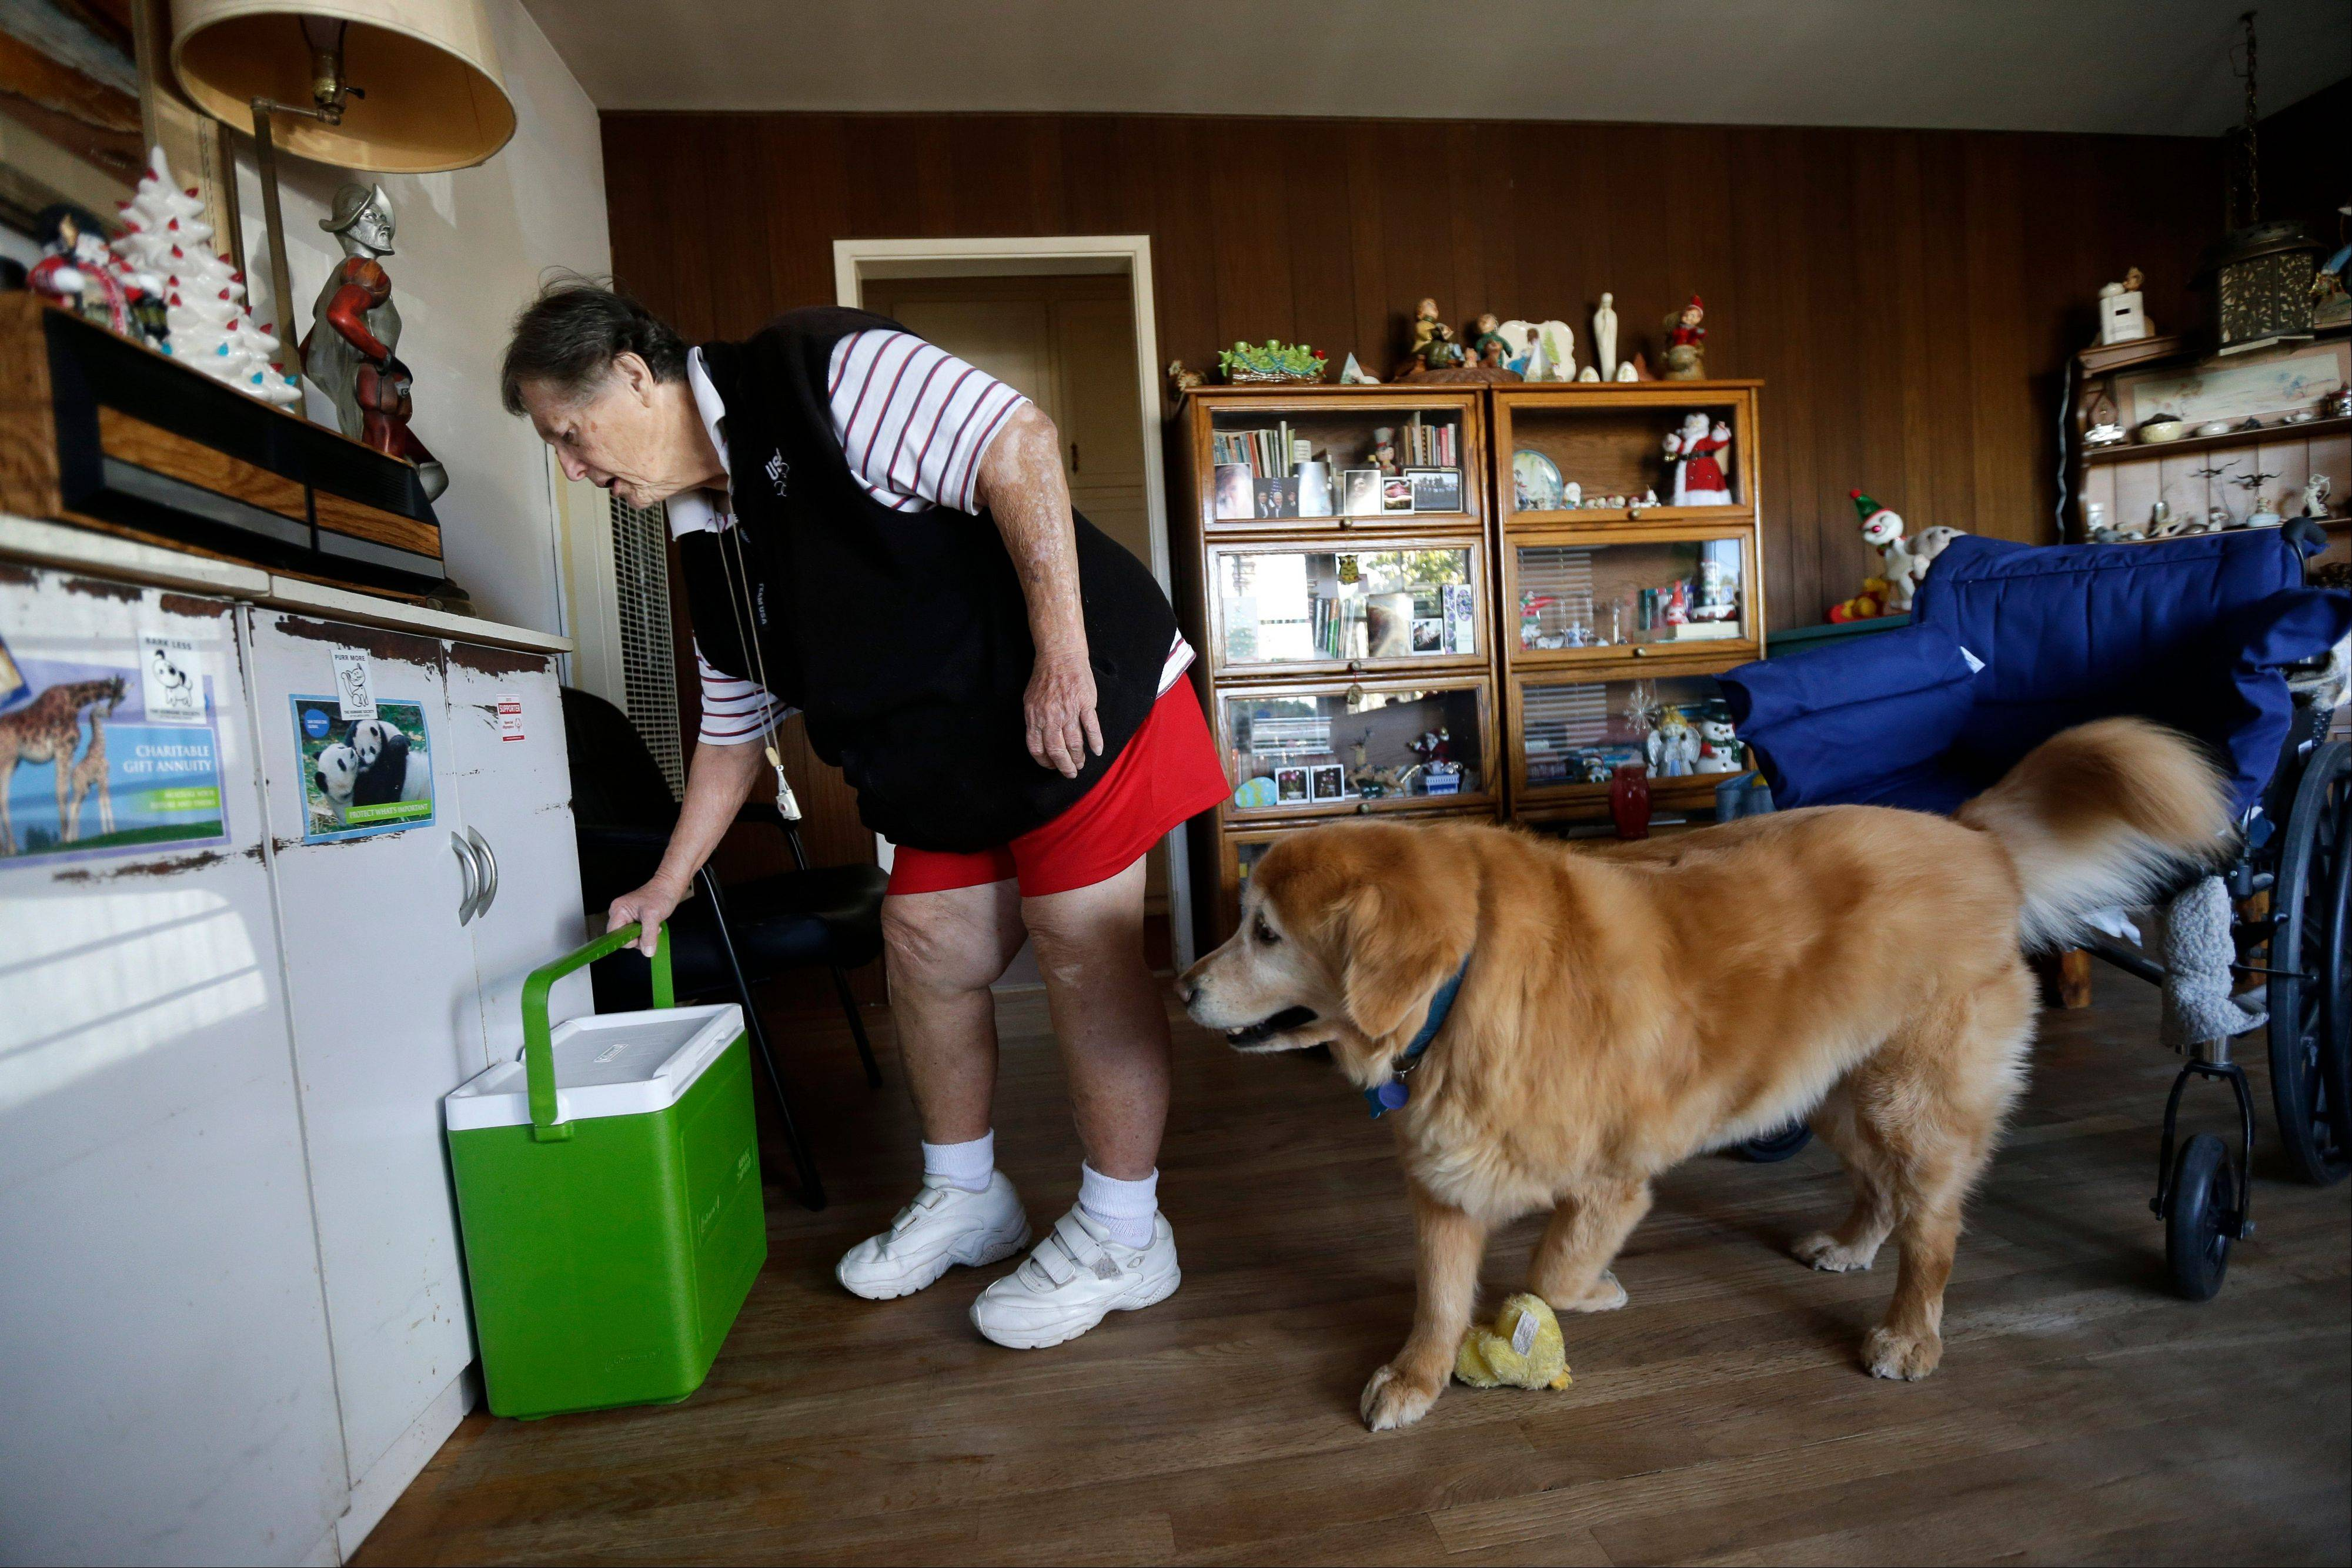 Sherry Scott moves a cooler holding her Meals on Wheels as her 10-year-old golden retriever Tootie looks on at her home in San Diego. Scott, who receives dog food for Tootie through the Animeals program, said she would give her lasagna and pork riblets from Meals on Wheels to Tootie if MOW didn't bring dog food for the dog. The pet food program is sponsored by the Helen Woodward Animal Center.